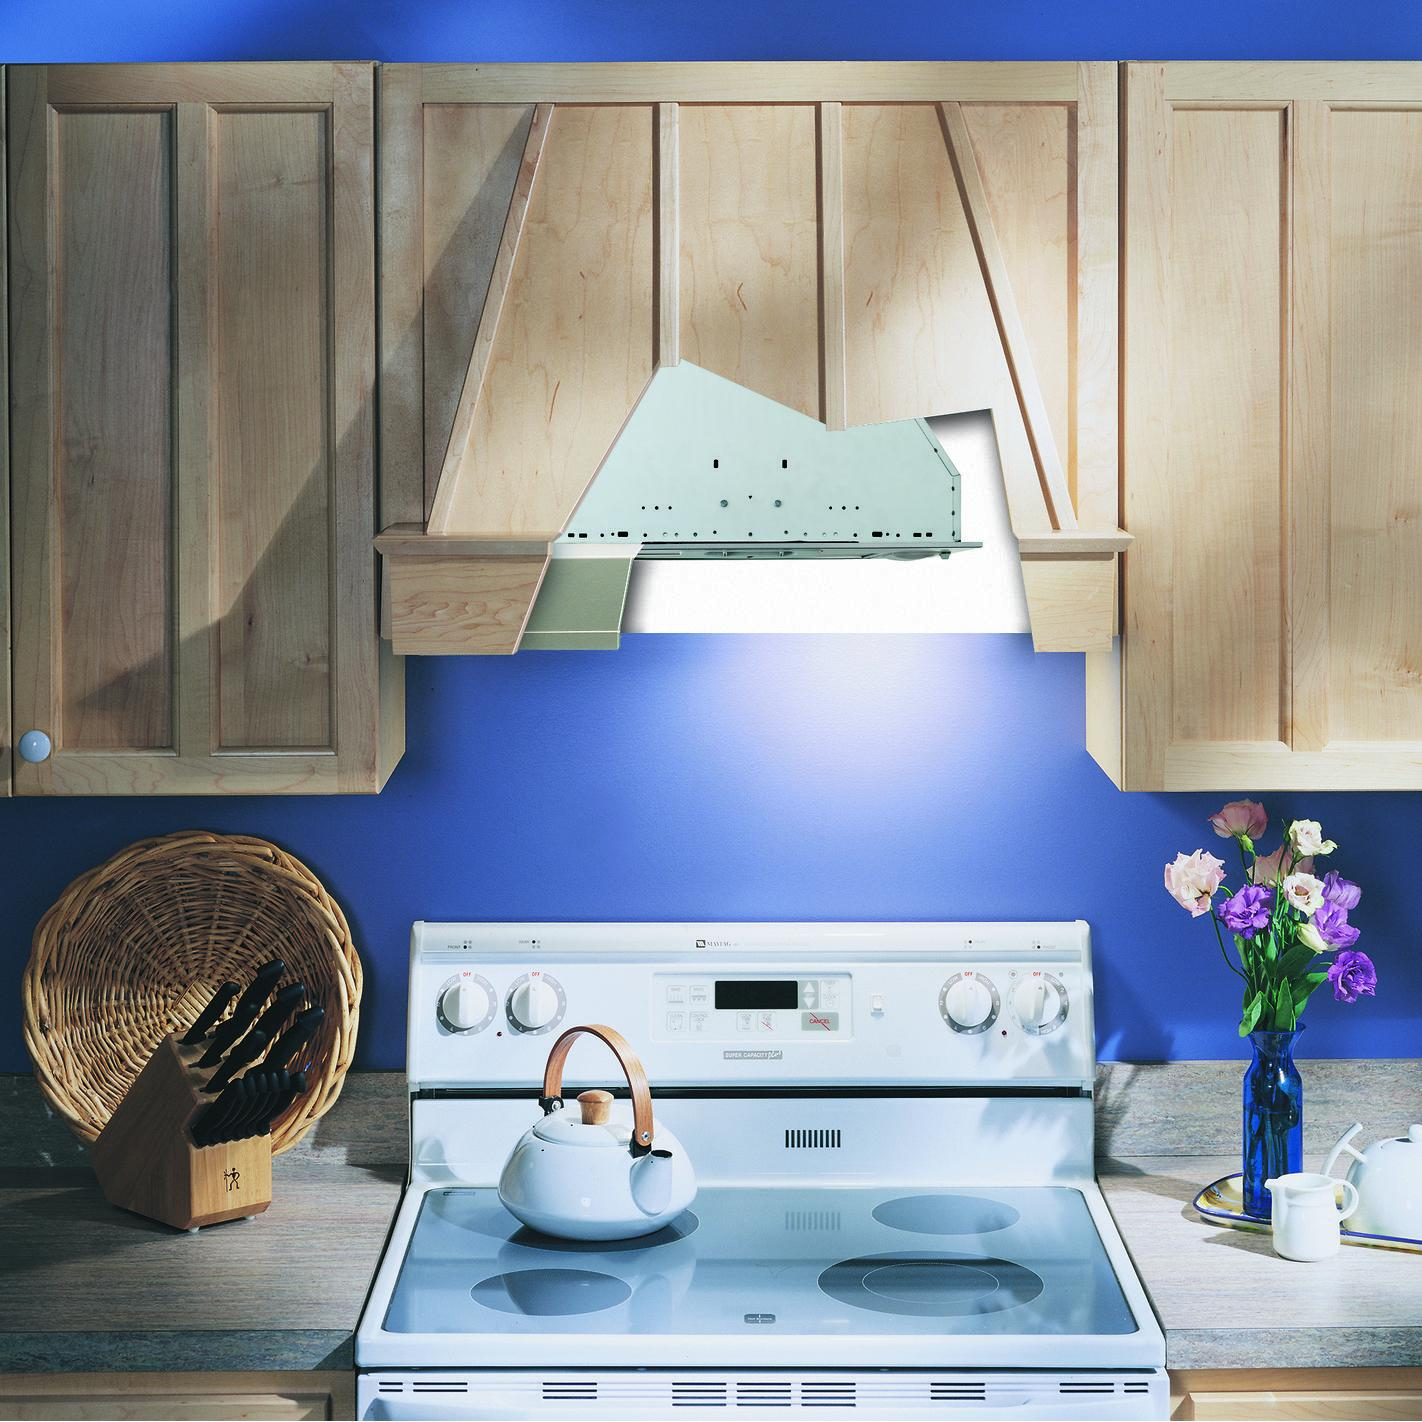 Kitchen Design Range Hood: Amazon.com: Broan PM390 Power Pack Range Hood Insert